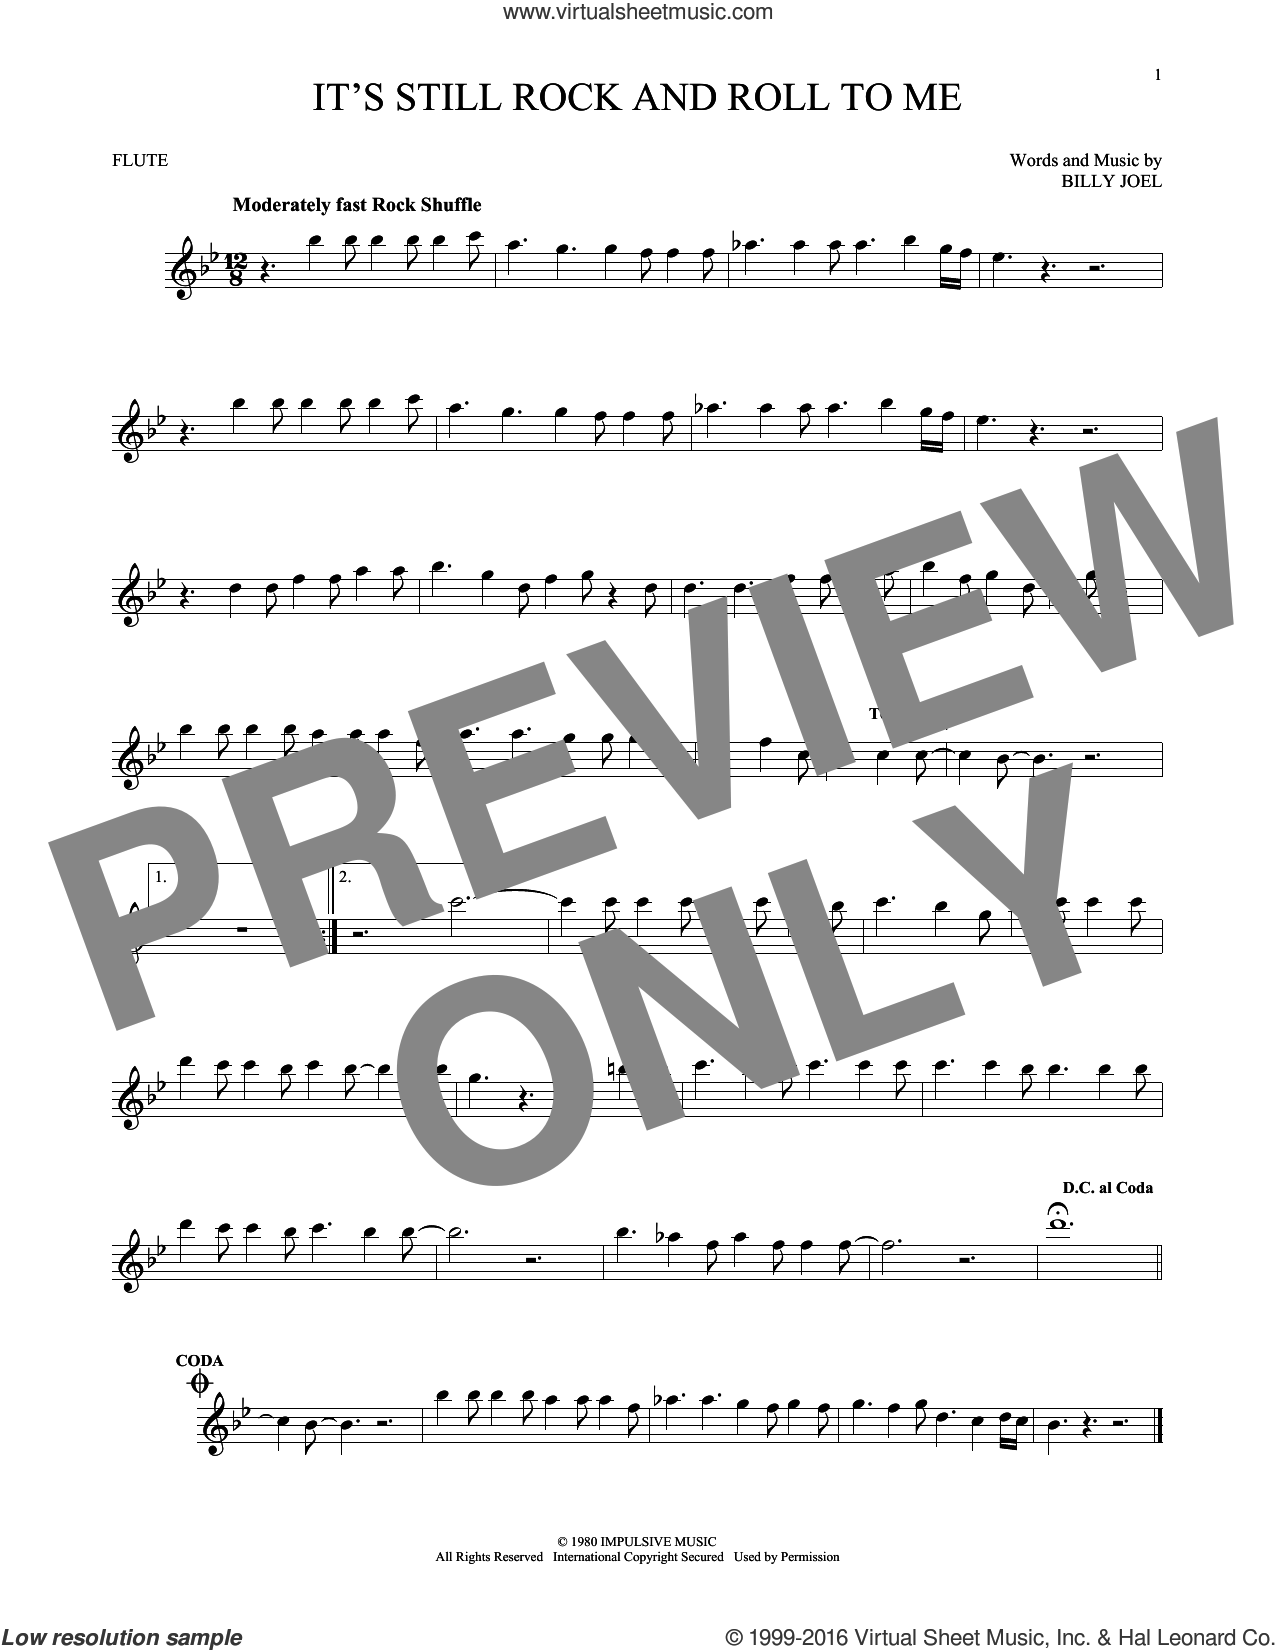 It's Still Rock And Roll To Me sheet music for flute solo by Billy Joel. Score Image Preview.